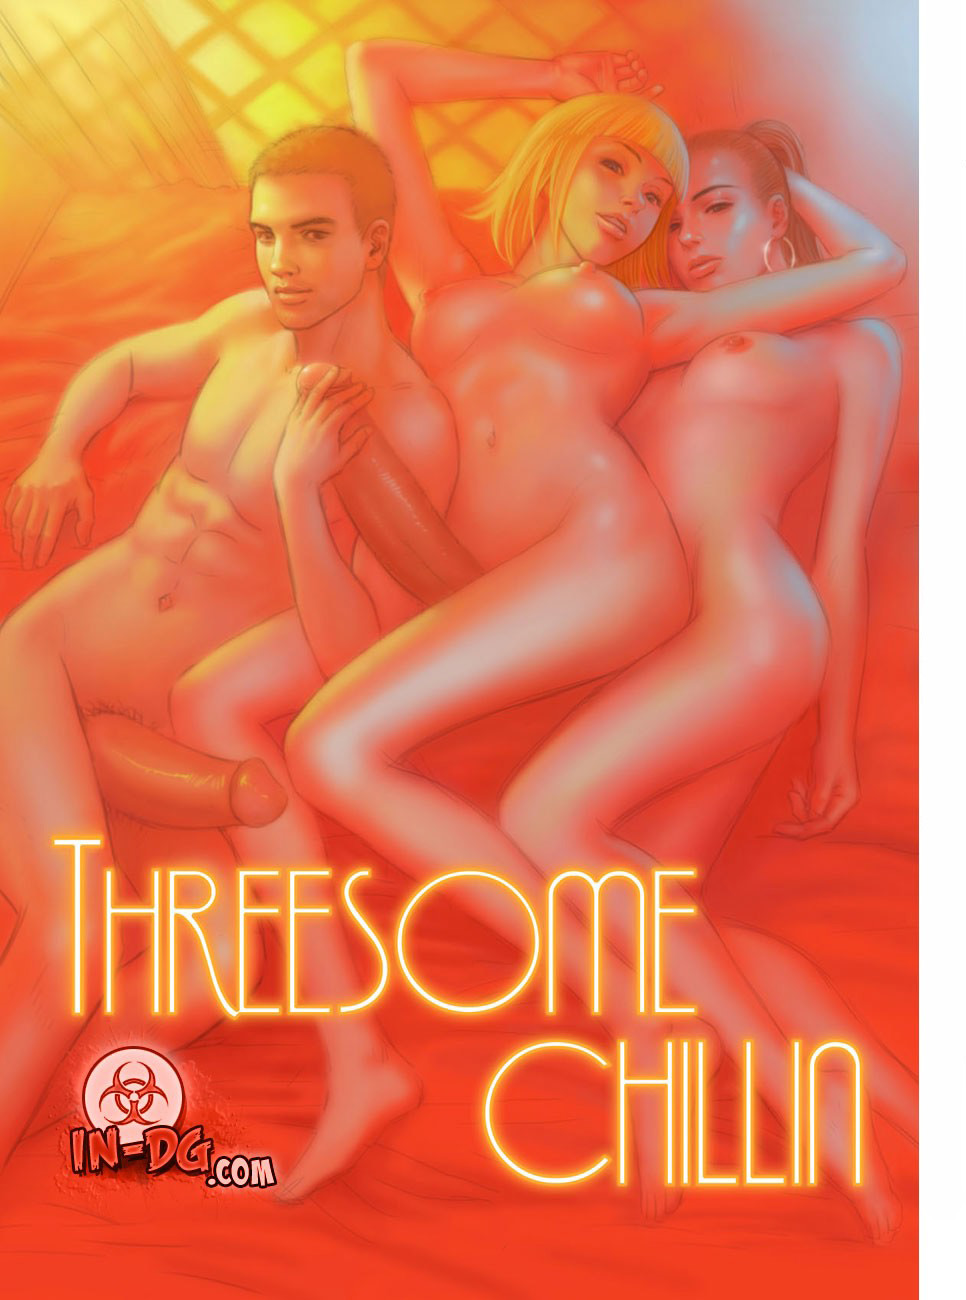 The Threesome Chillin 01